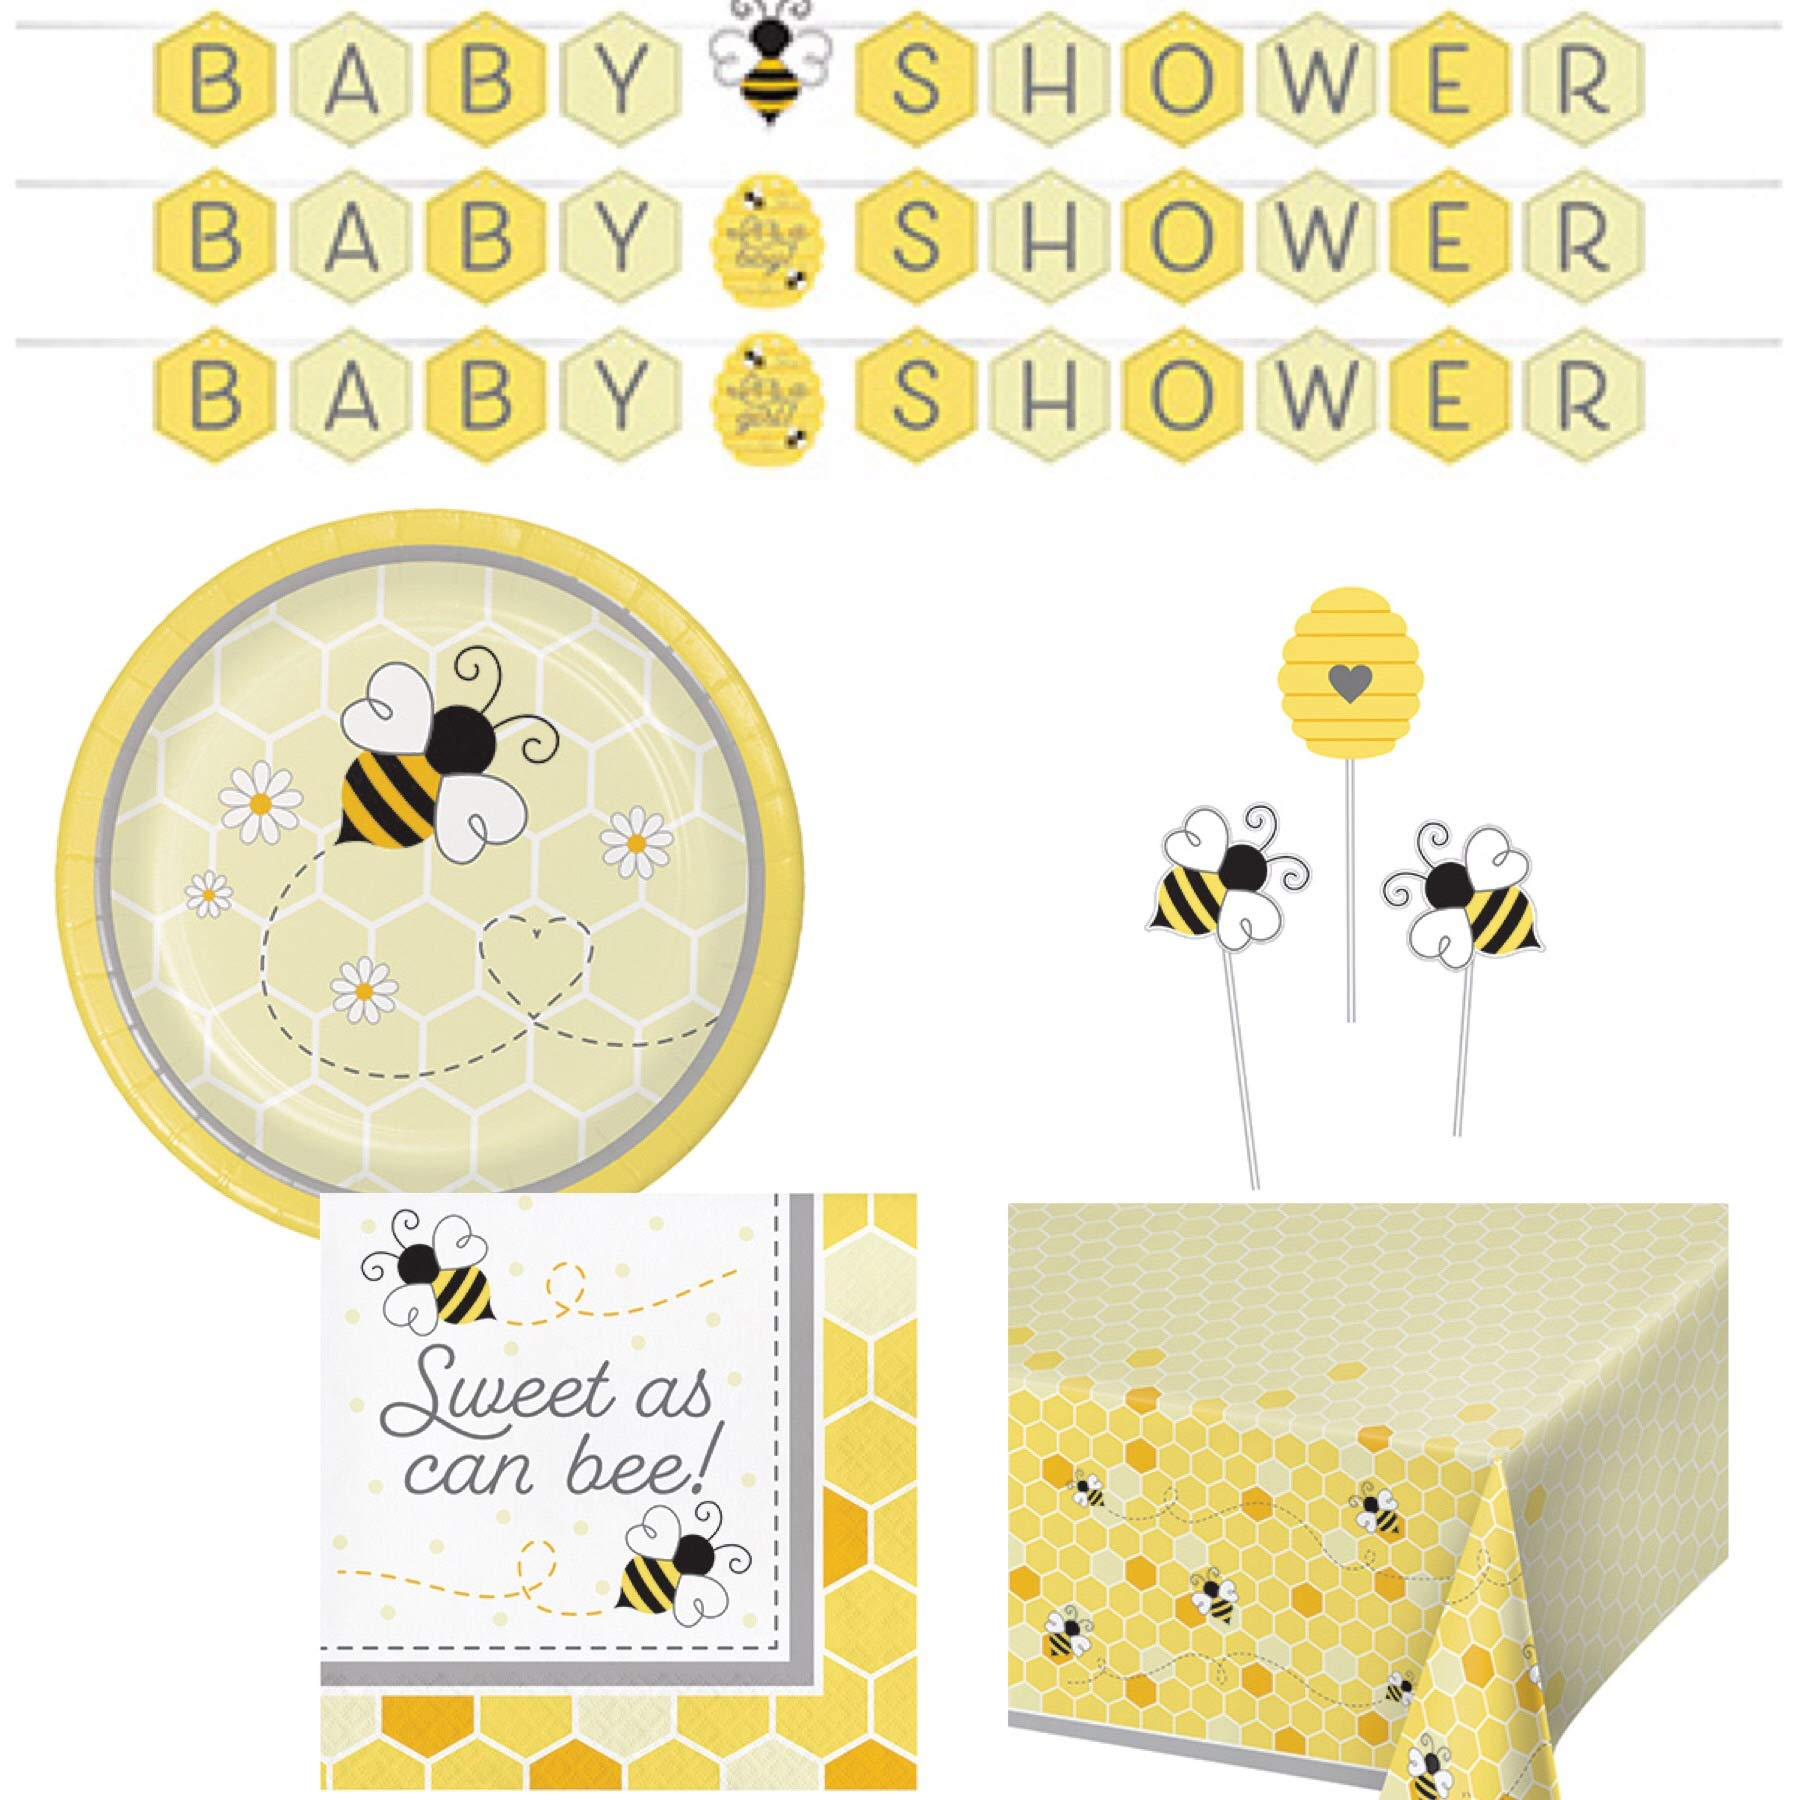 Olive Occasions Baby Bumble Bee Baby Shower Paper Disposable Party Supplies Serves 16 Plates, Napkins, Banner, Table Cover, Centerpiece Sticks, Grandma Olive's Multi-Generational Recipe